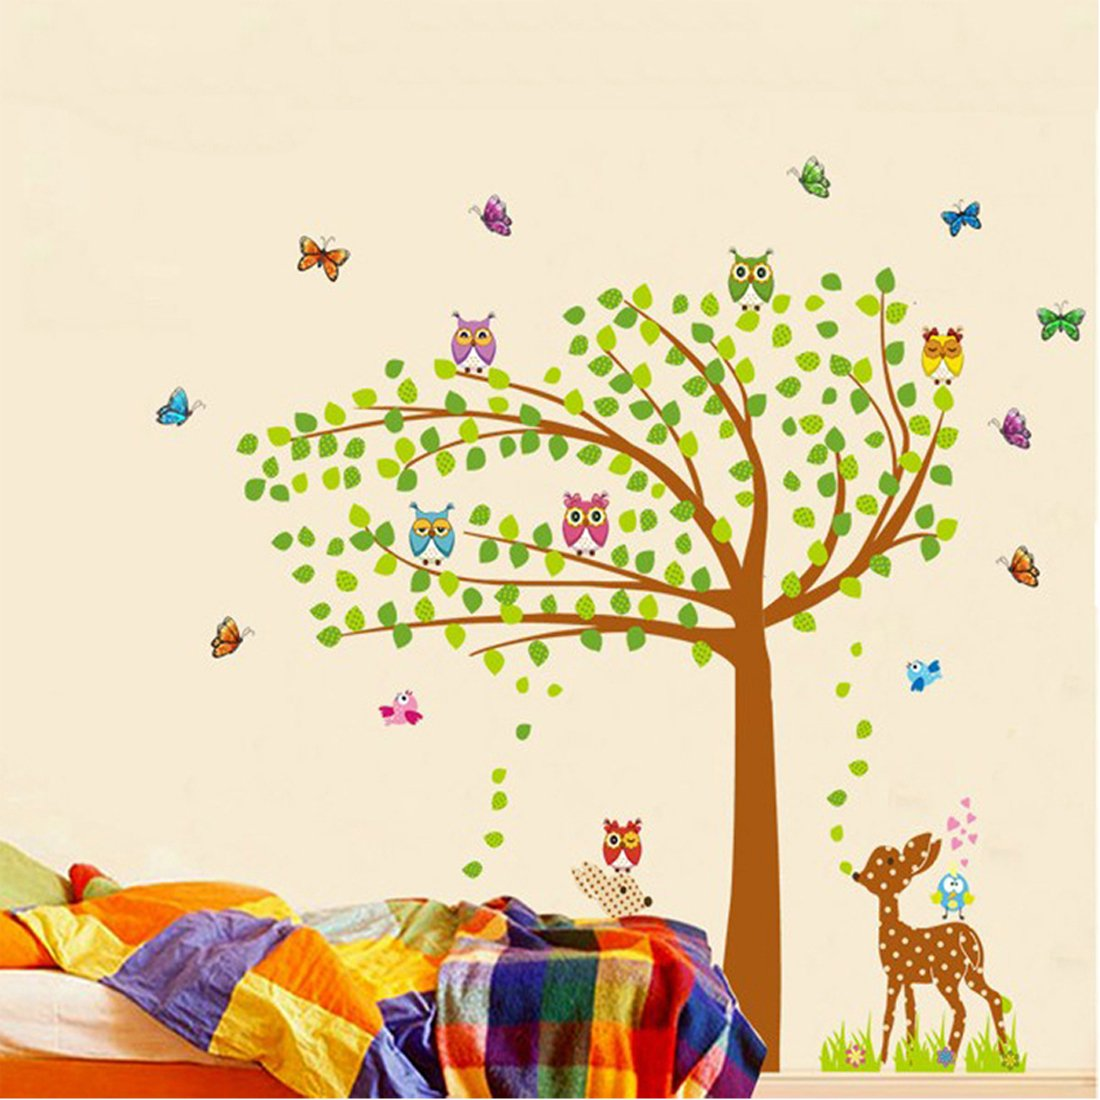 Amazon.com: Wall Decal Green Leaves Tree Birds Butterflies Deers ...